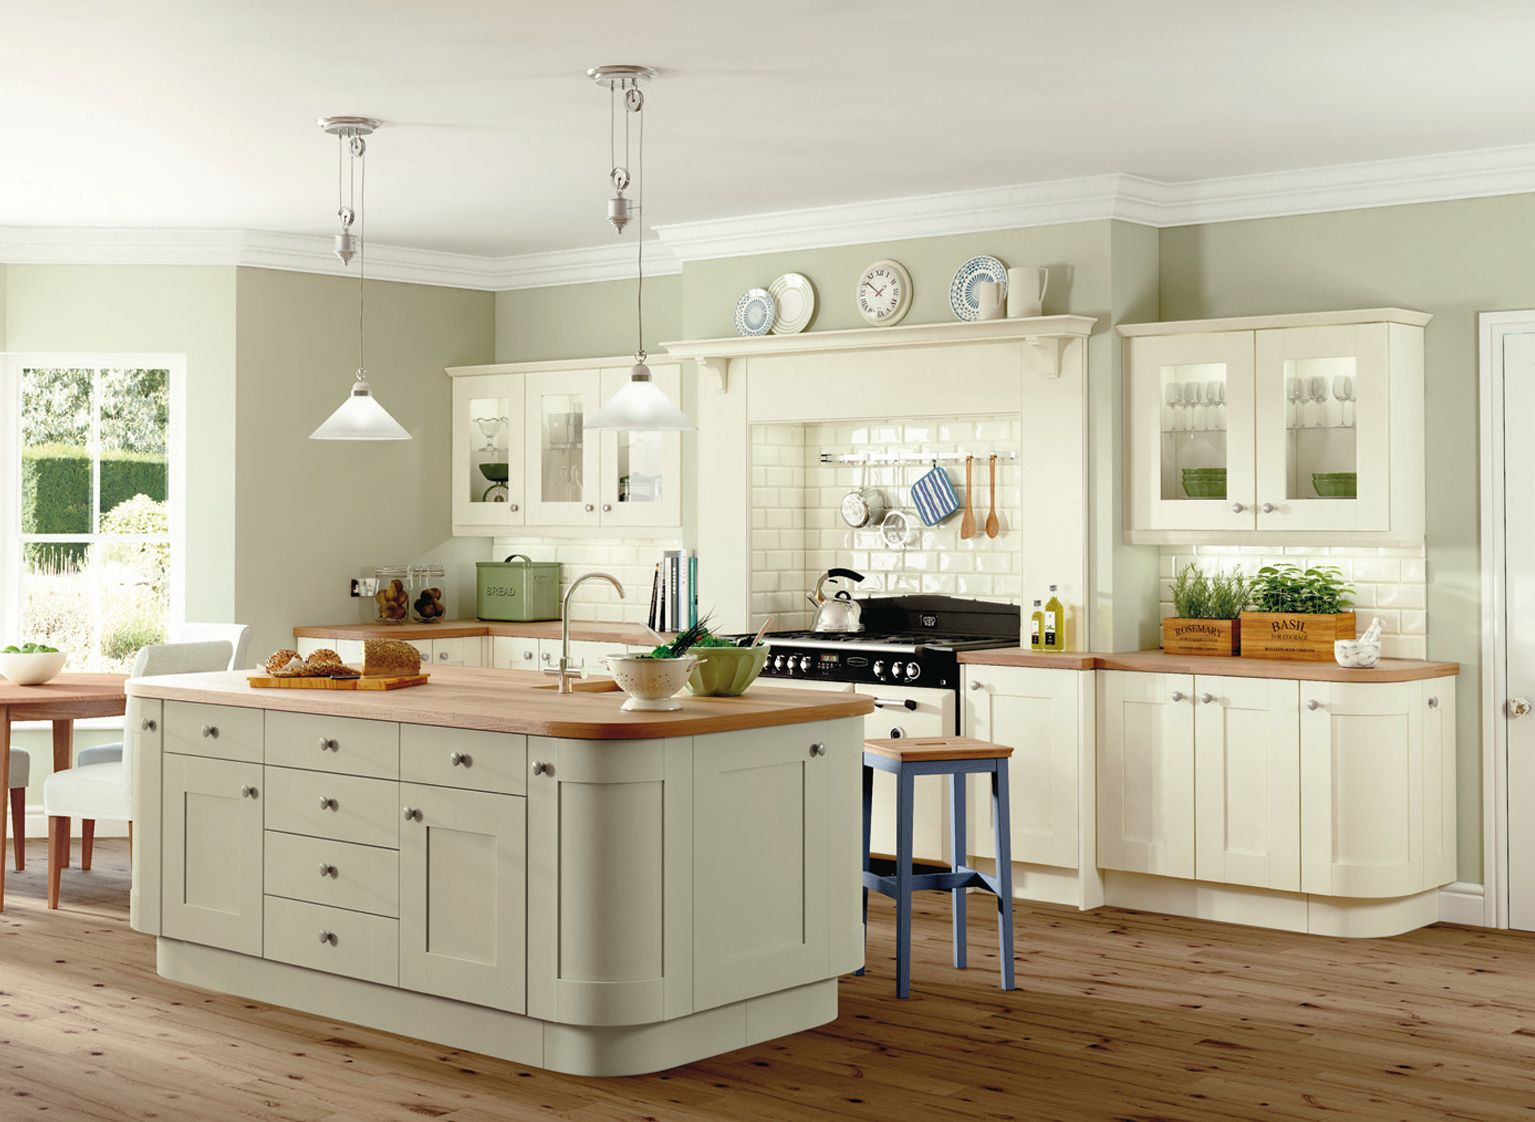 Symph Rockford Ivory And Sage Kitchen